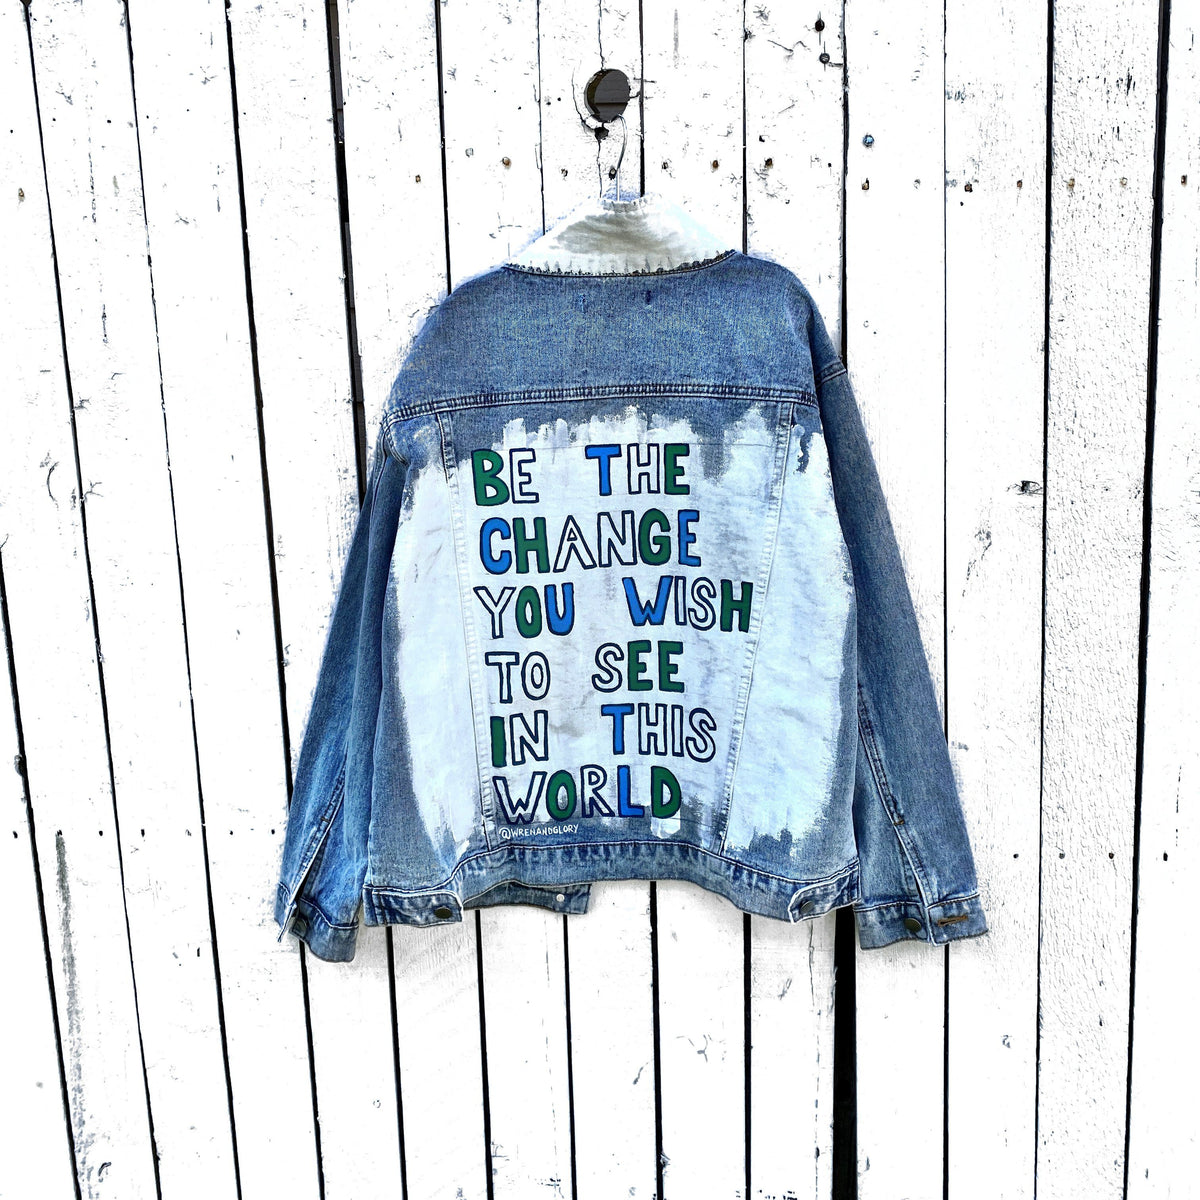 Lighter blue denim wash. White base on back, with BE THE CHANGE YOU WISH TO SEE IN THIS WORLD painted on the back in blues & green, in block letters. Collar and front pockets painted white. 12 Earth Day / environment friendly related pins on the front. Signed @wrenandglory.